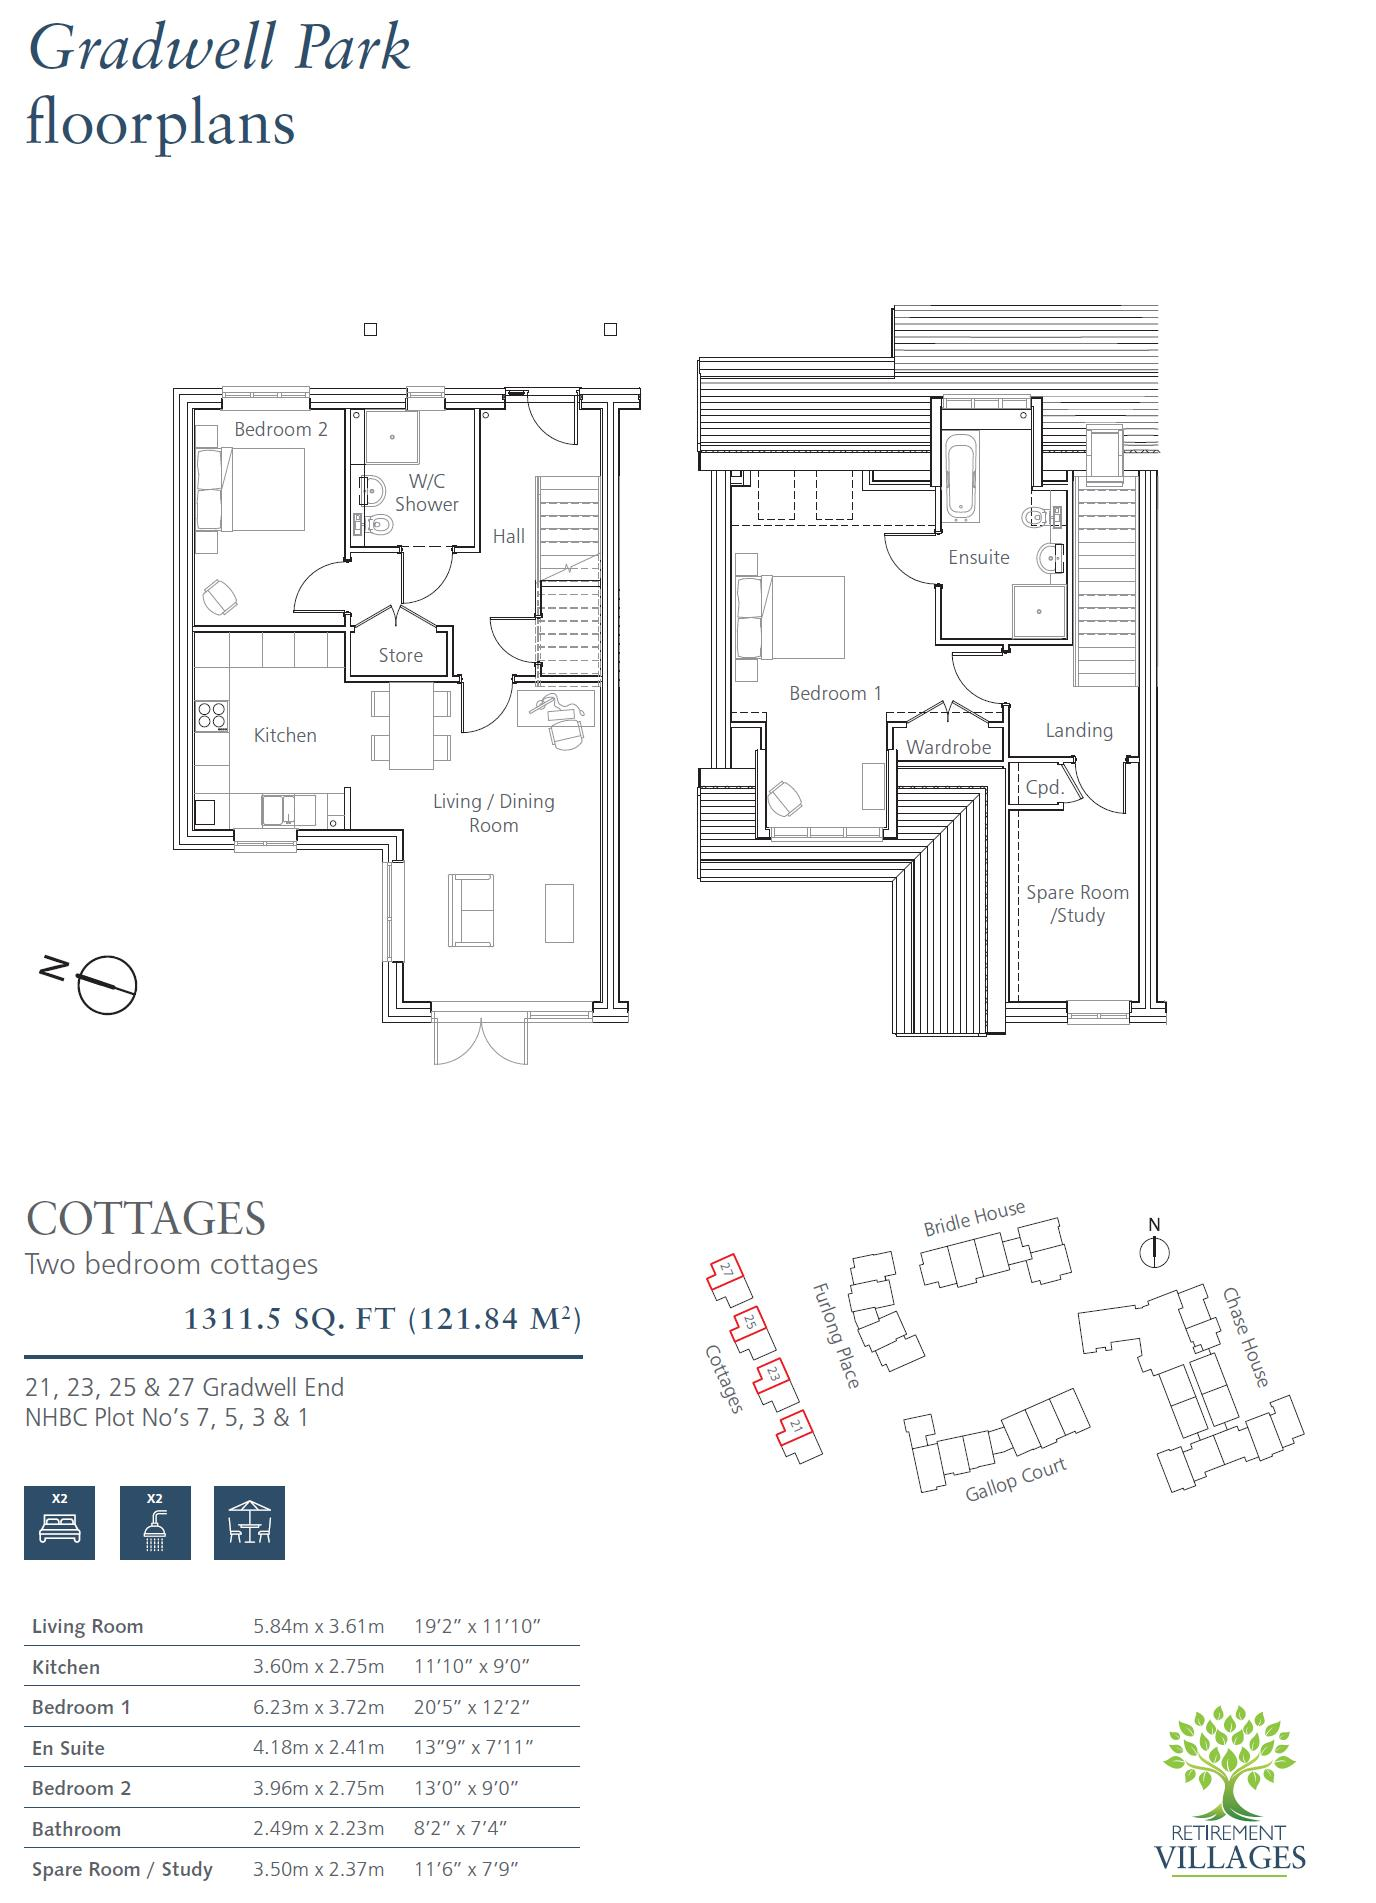 New Build, 23 Gradwell End Floorplan